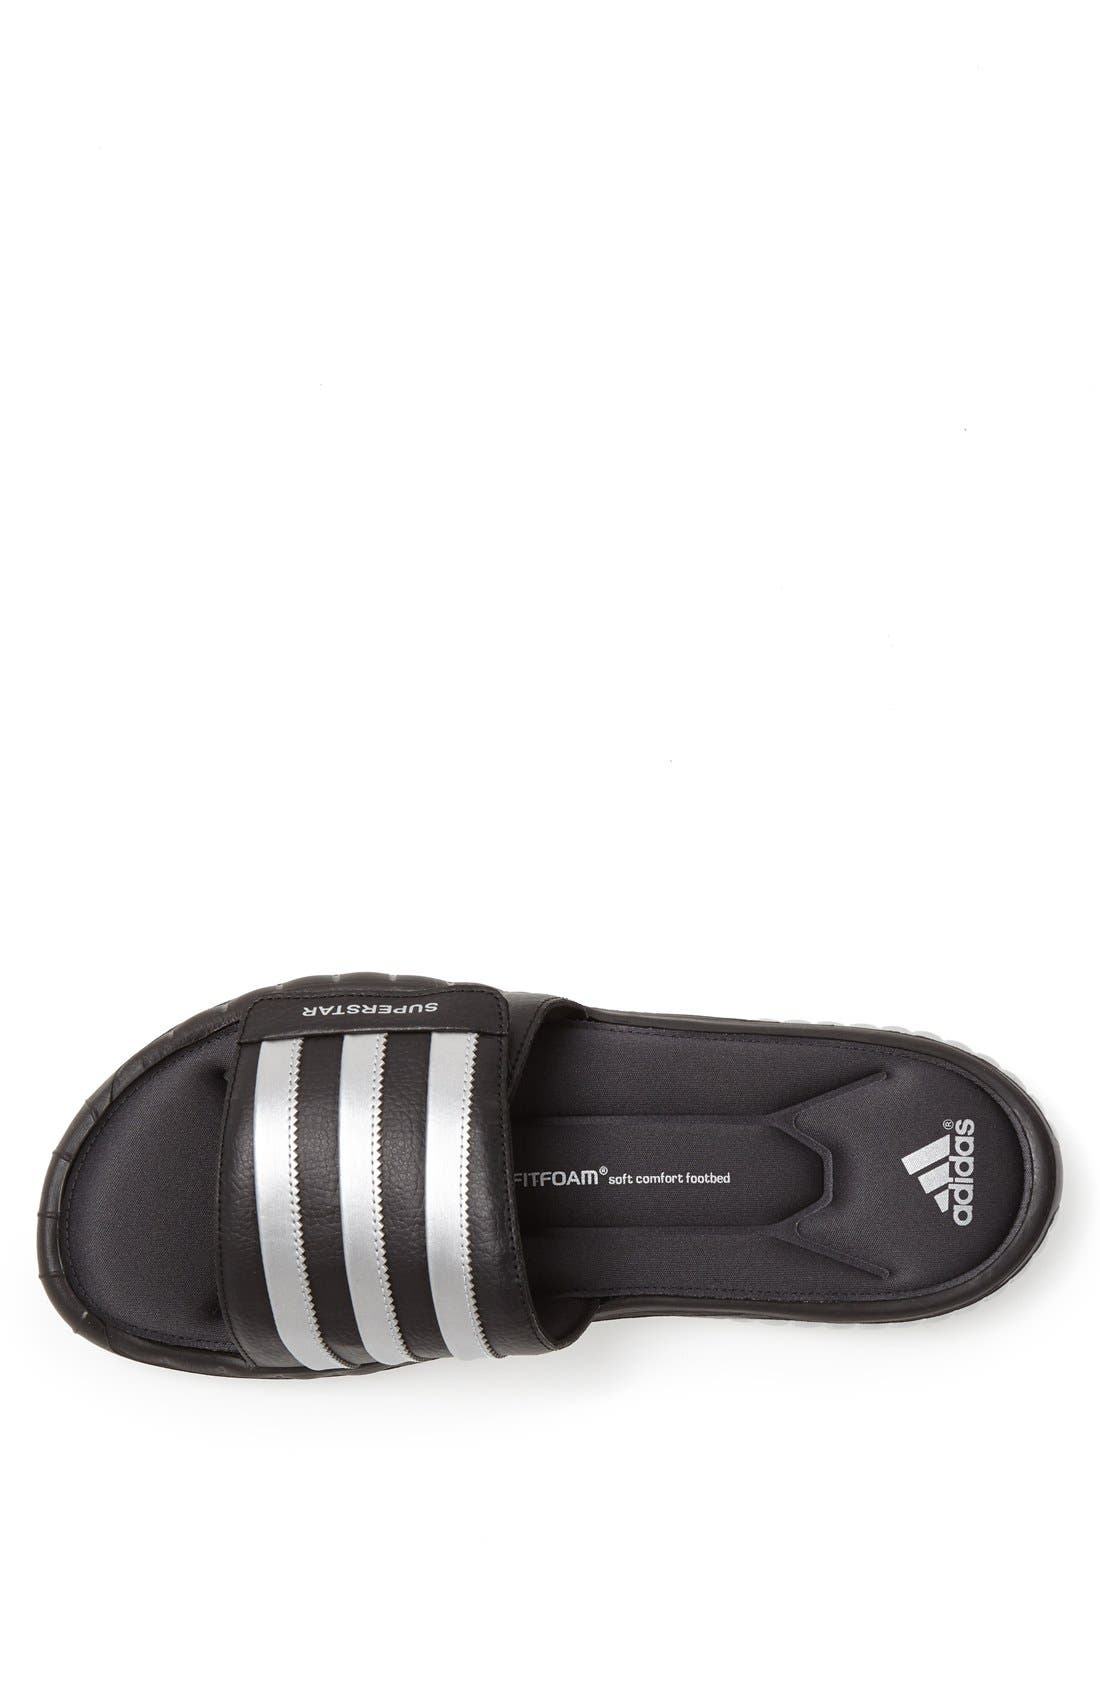 Alternate Image 3  - adidas Superstar 3G Slide Sandal